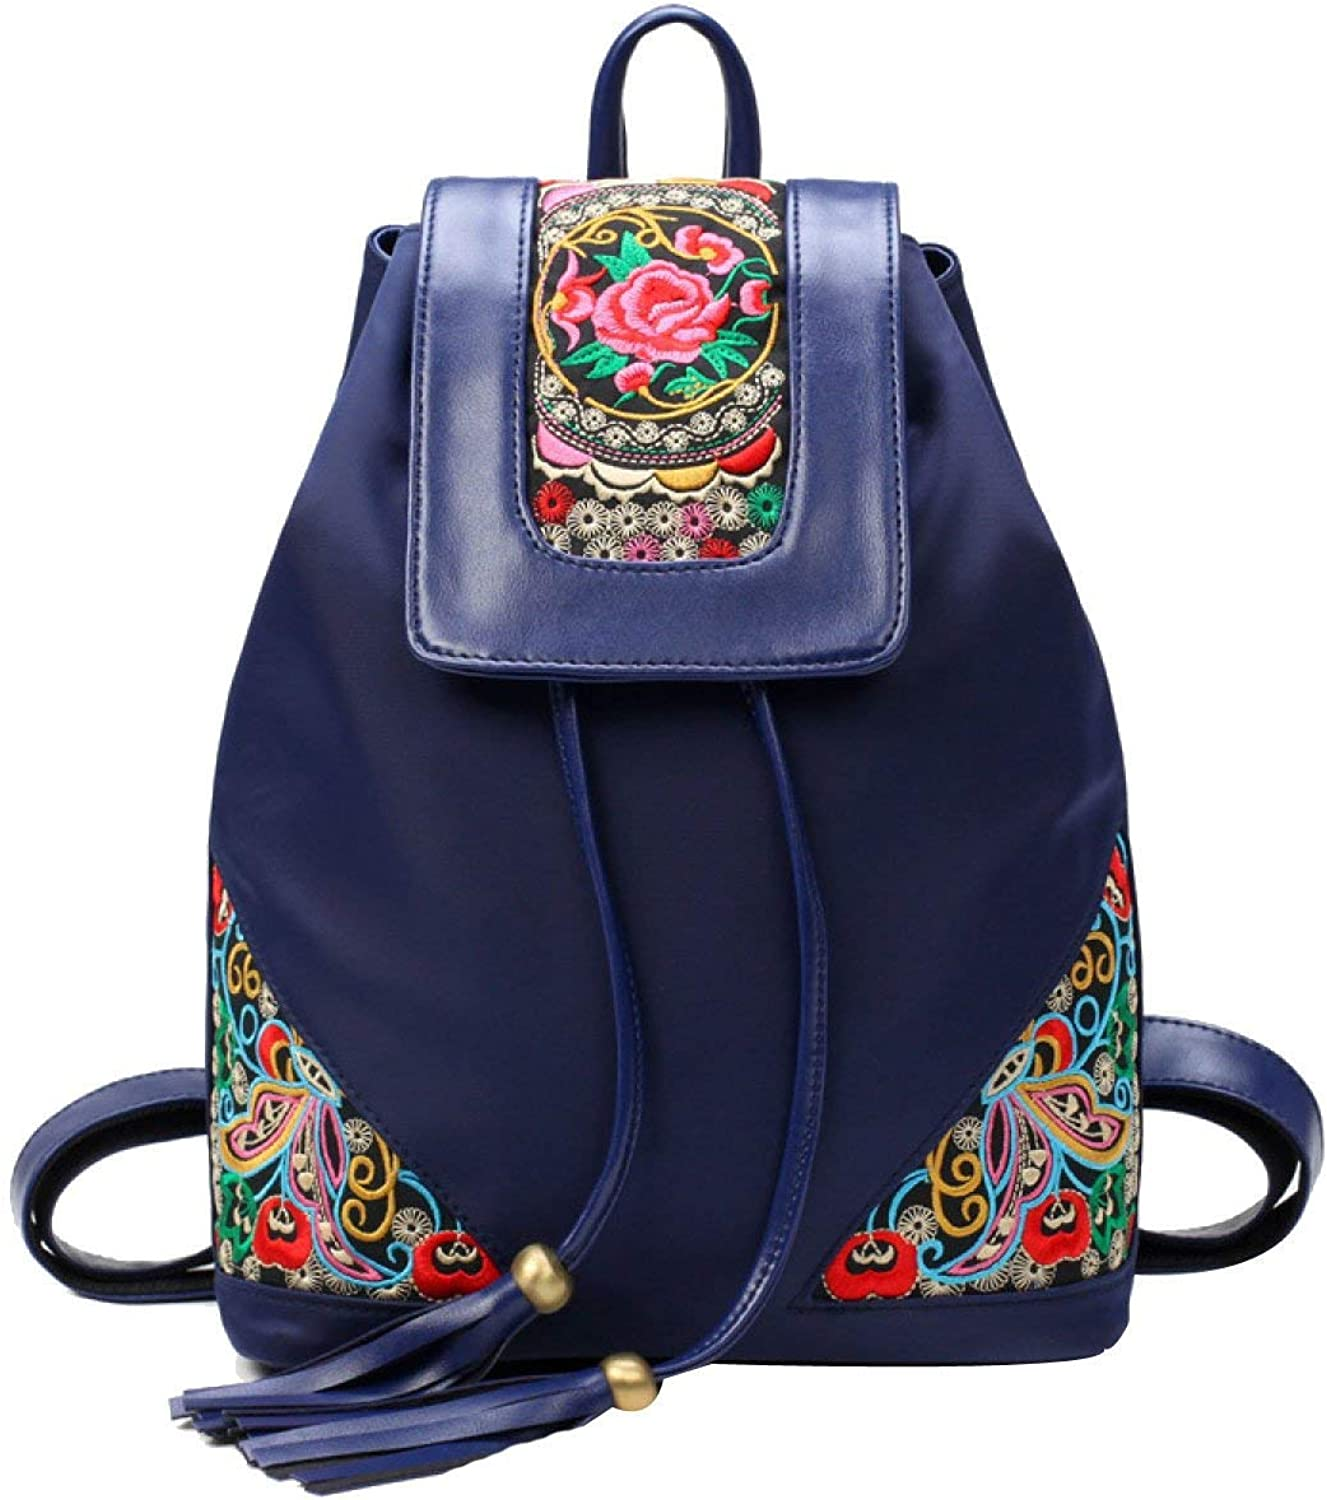 Business Laptop Backpack Notebook Rucksack Ladies Fashion Soft Leather Embroidery Backpack College School Rucksack Bag Black bluee (color   bluee, Size   Medium)